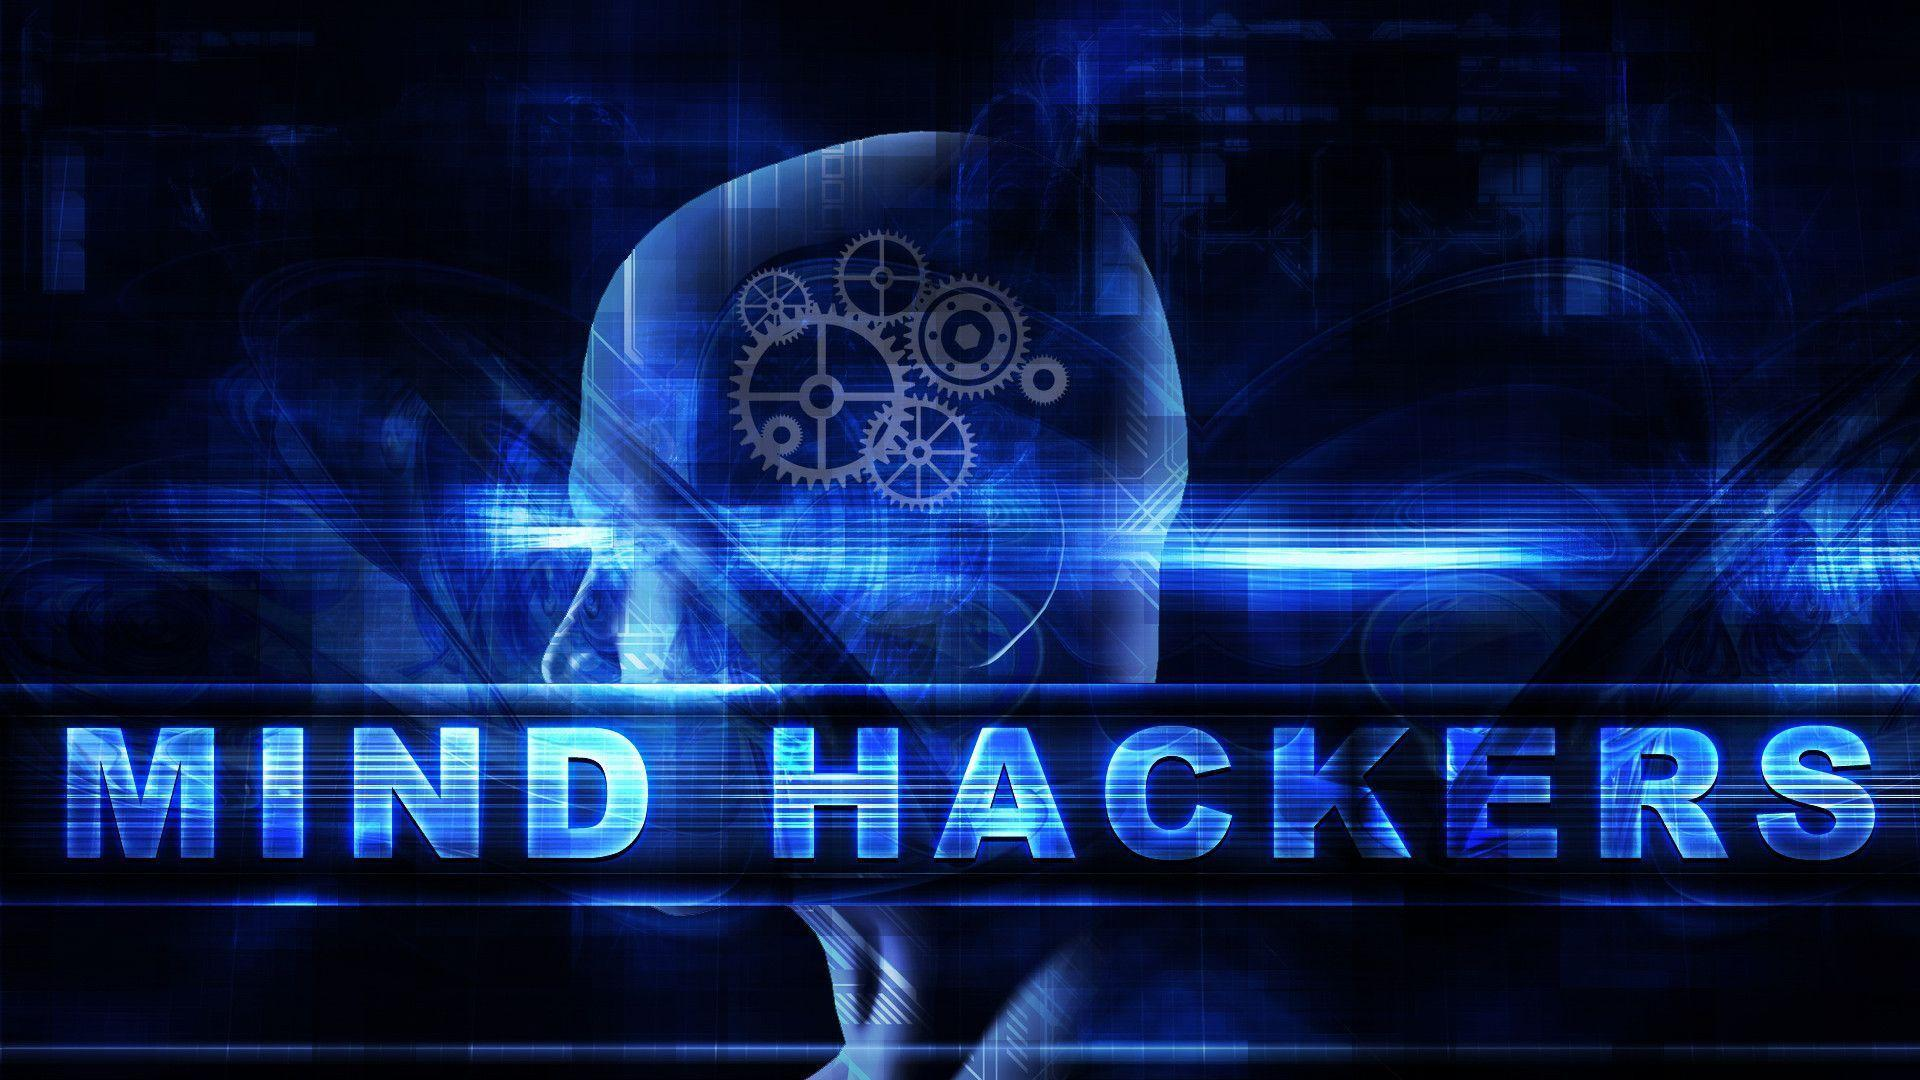 hackers wallpaper wallpapers de - photo #21